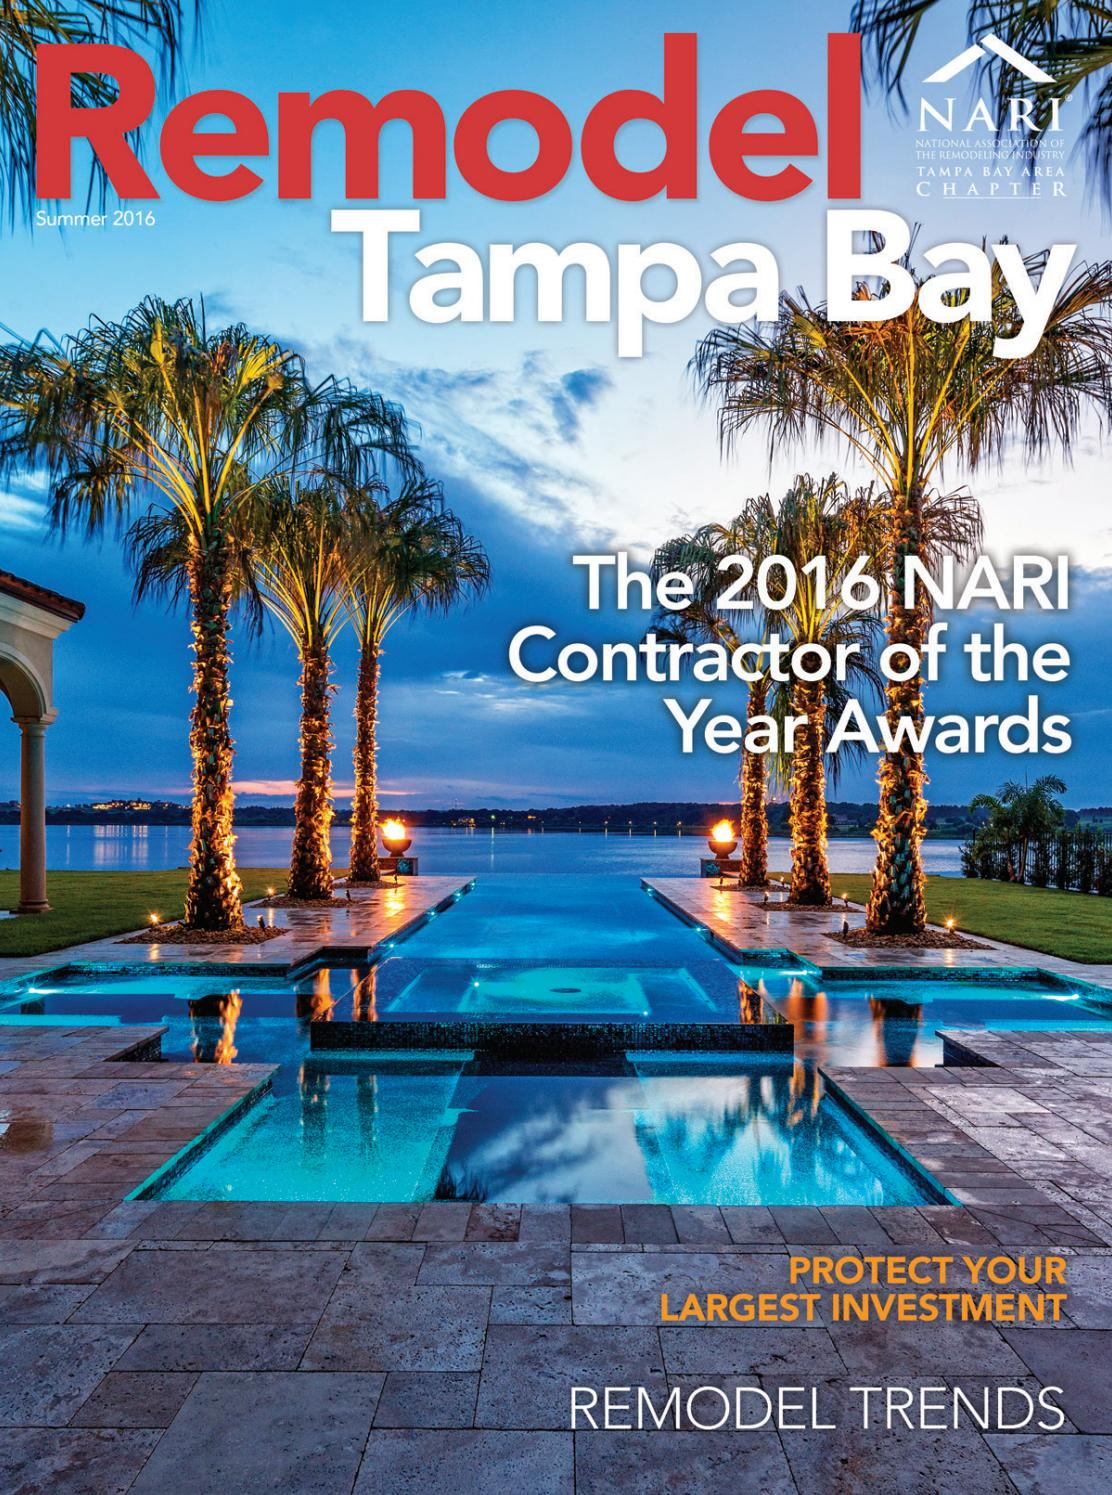 Remodel Tampa Bay Summer Issue 2016